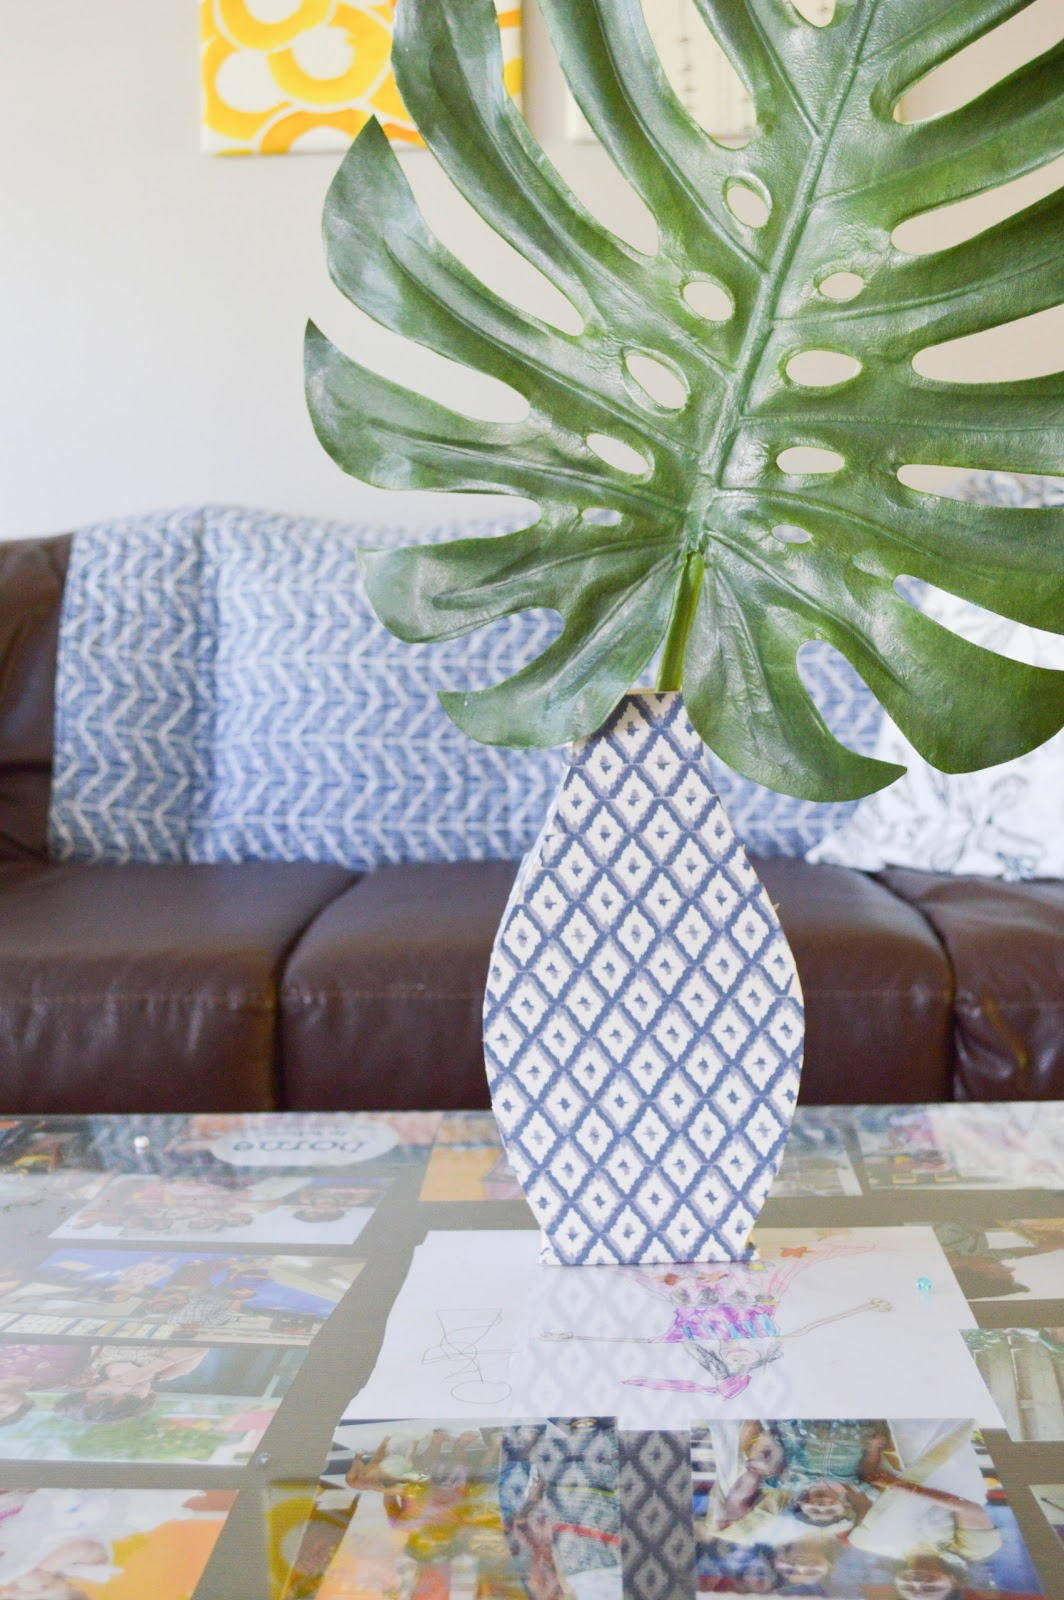 DIY Boho chic wood vase with easy instructions